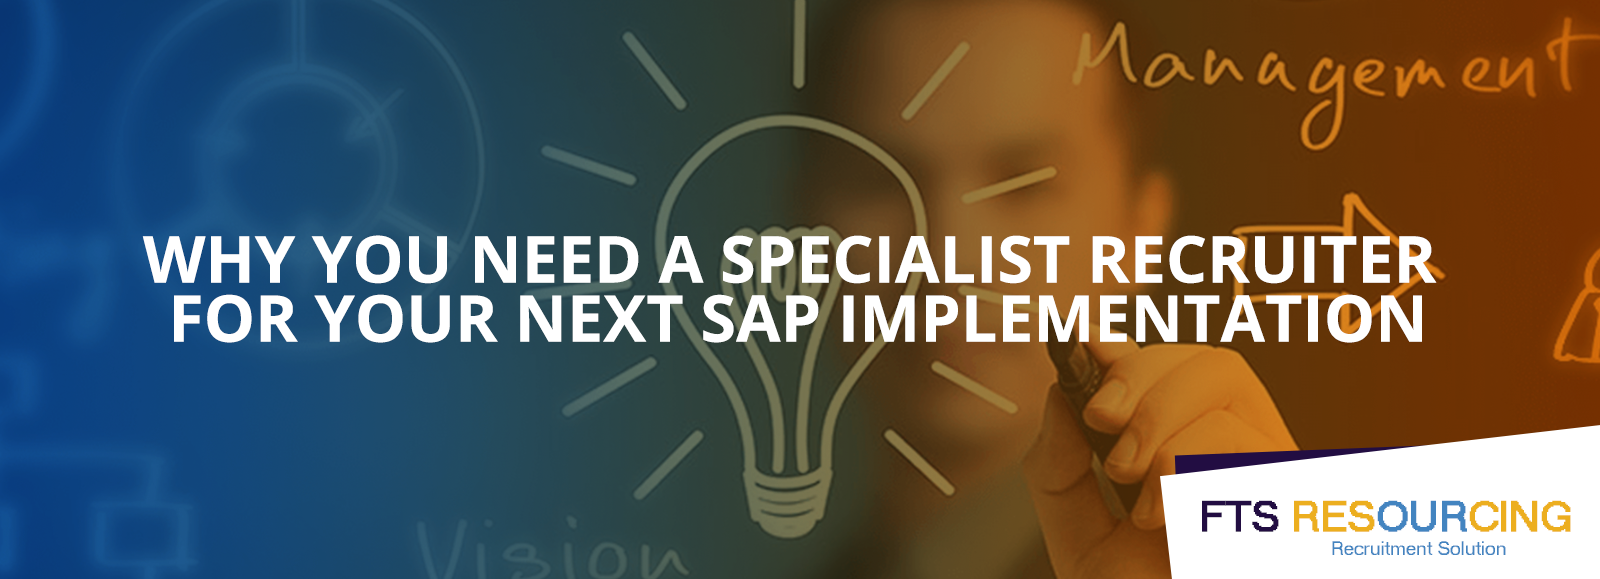 Why do you need a specilaist recruiter for your next SAP implementation